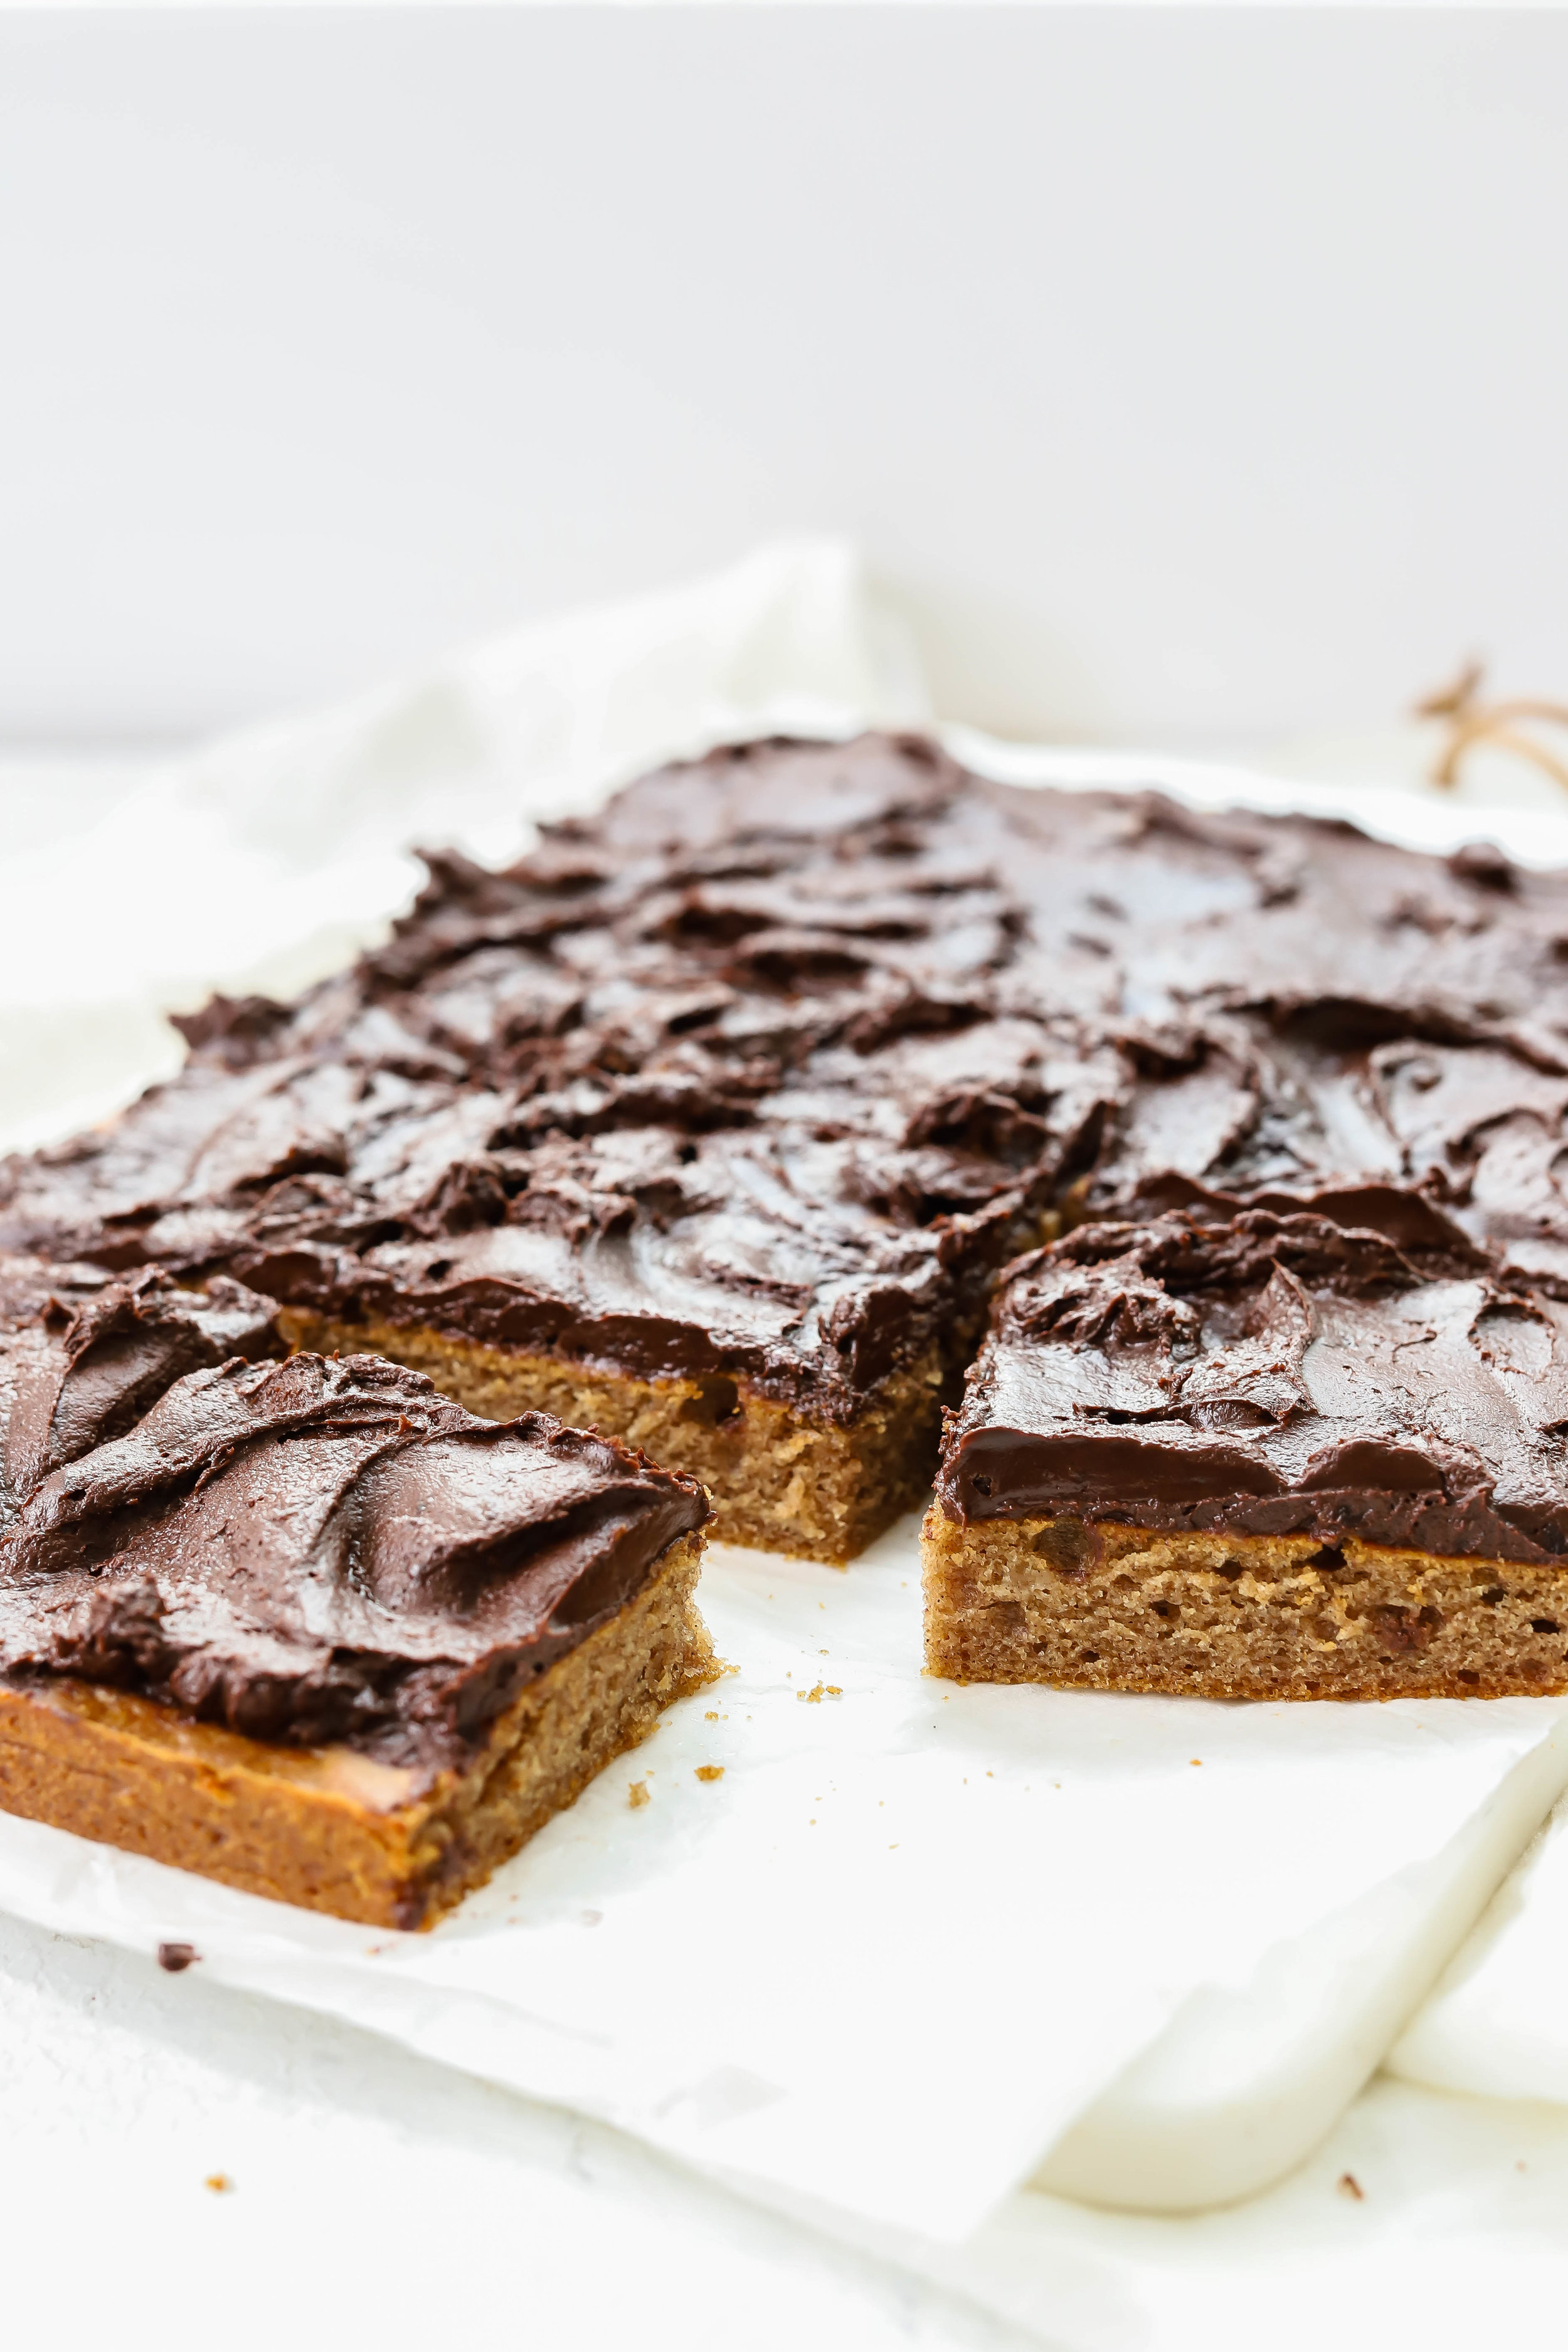 Vegan and gluten-free sheet cake with rich chocolate frosting and sweetened with dates.